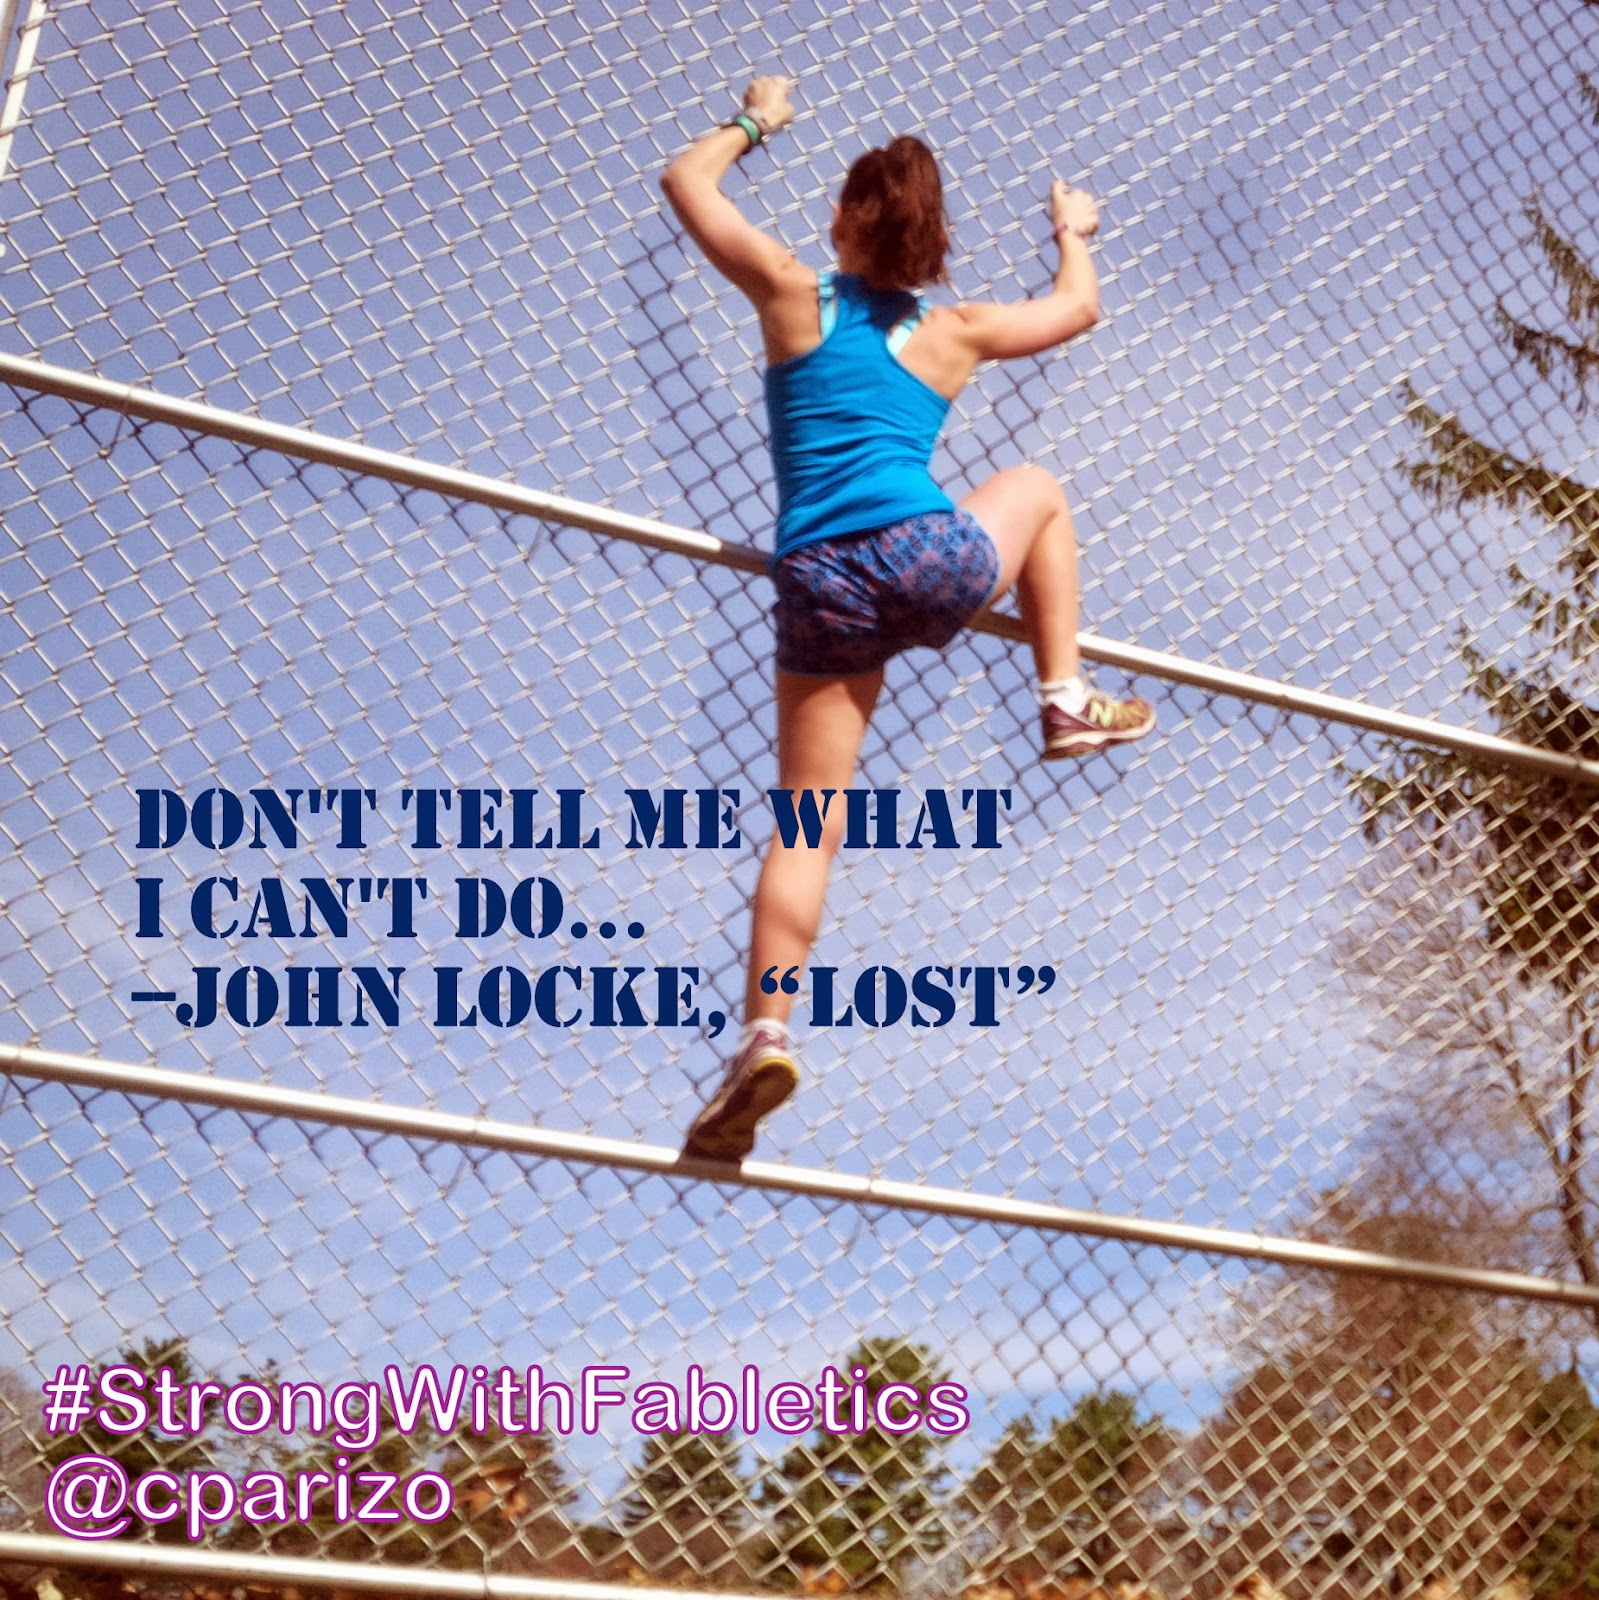 """Don't tell me what I can't do -- John Locke, """"LOST"""""""